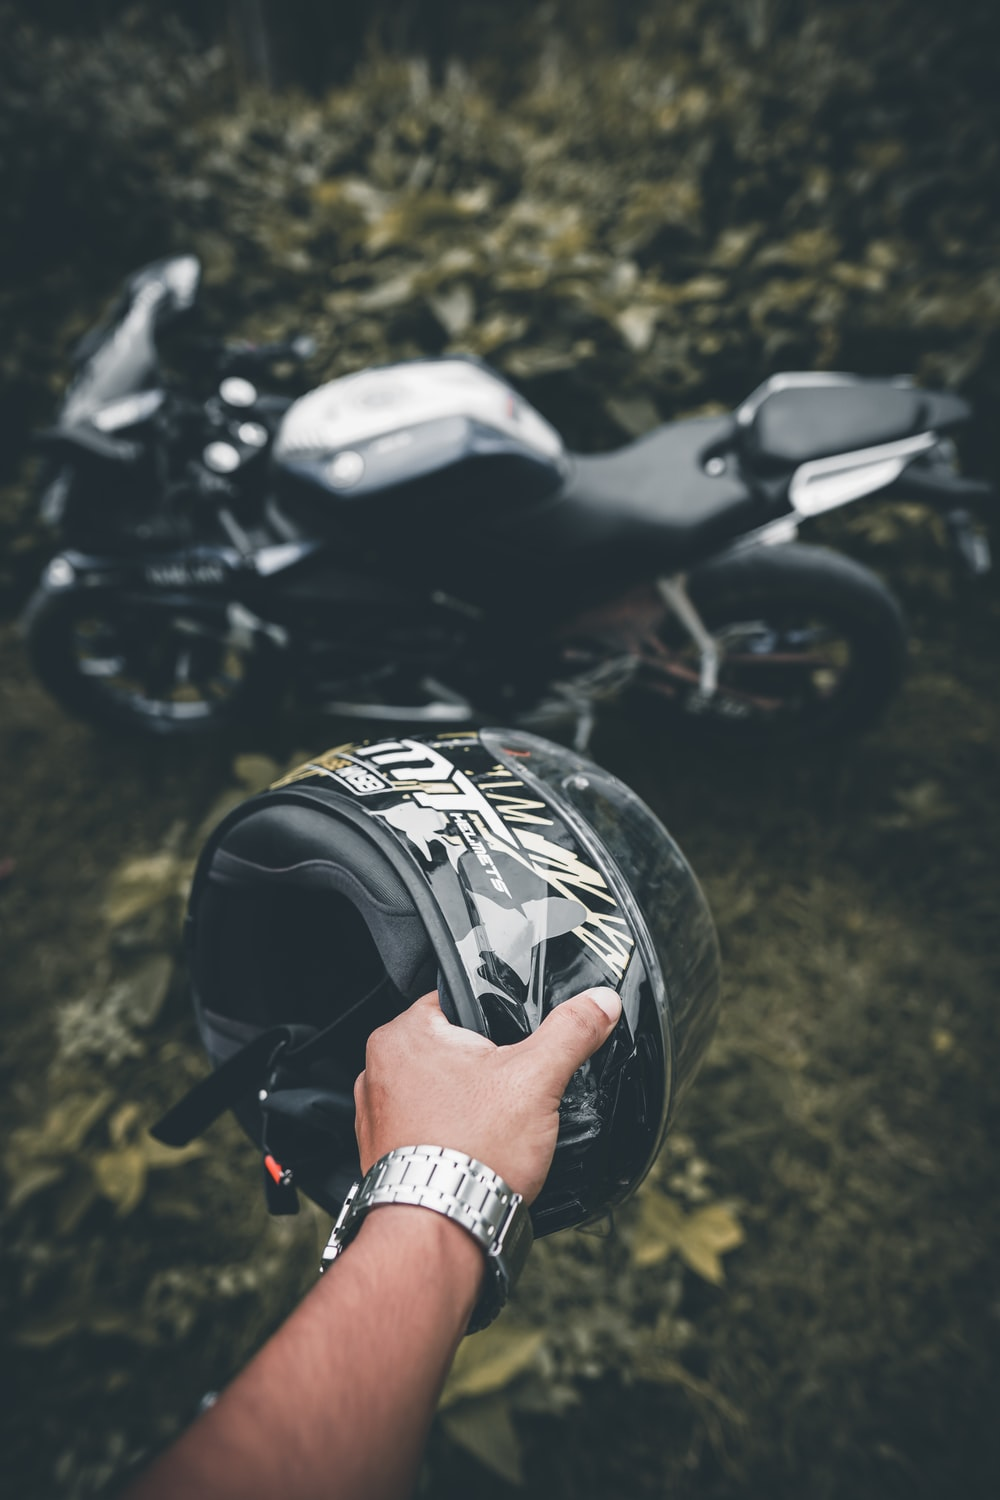 R15 Pictures Download Free Images On Unsplash